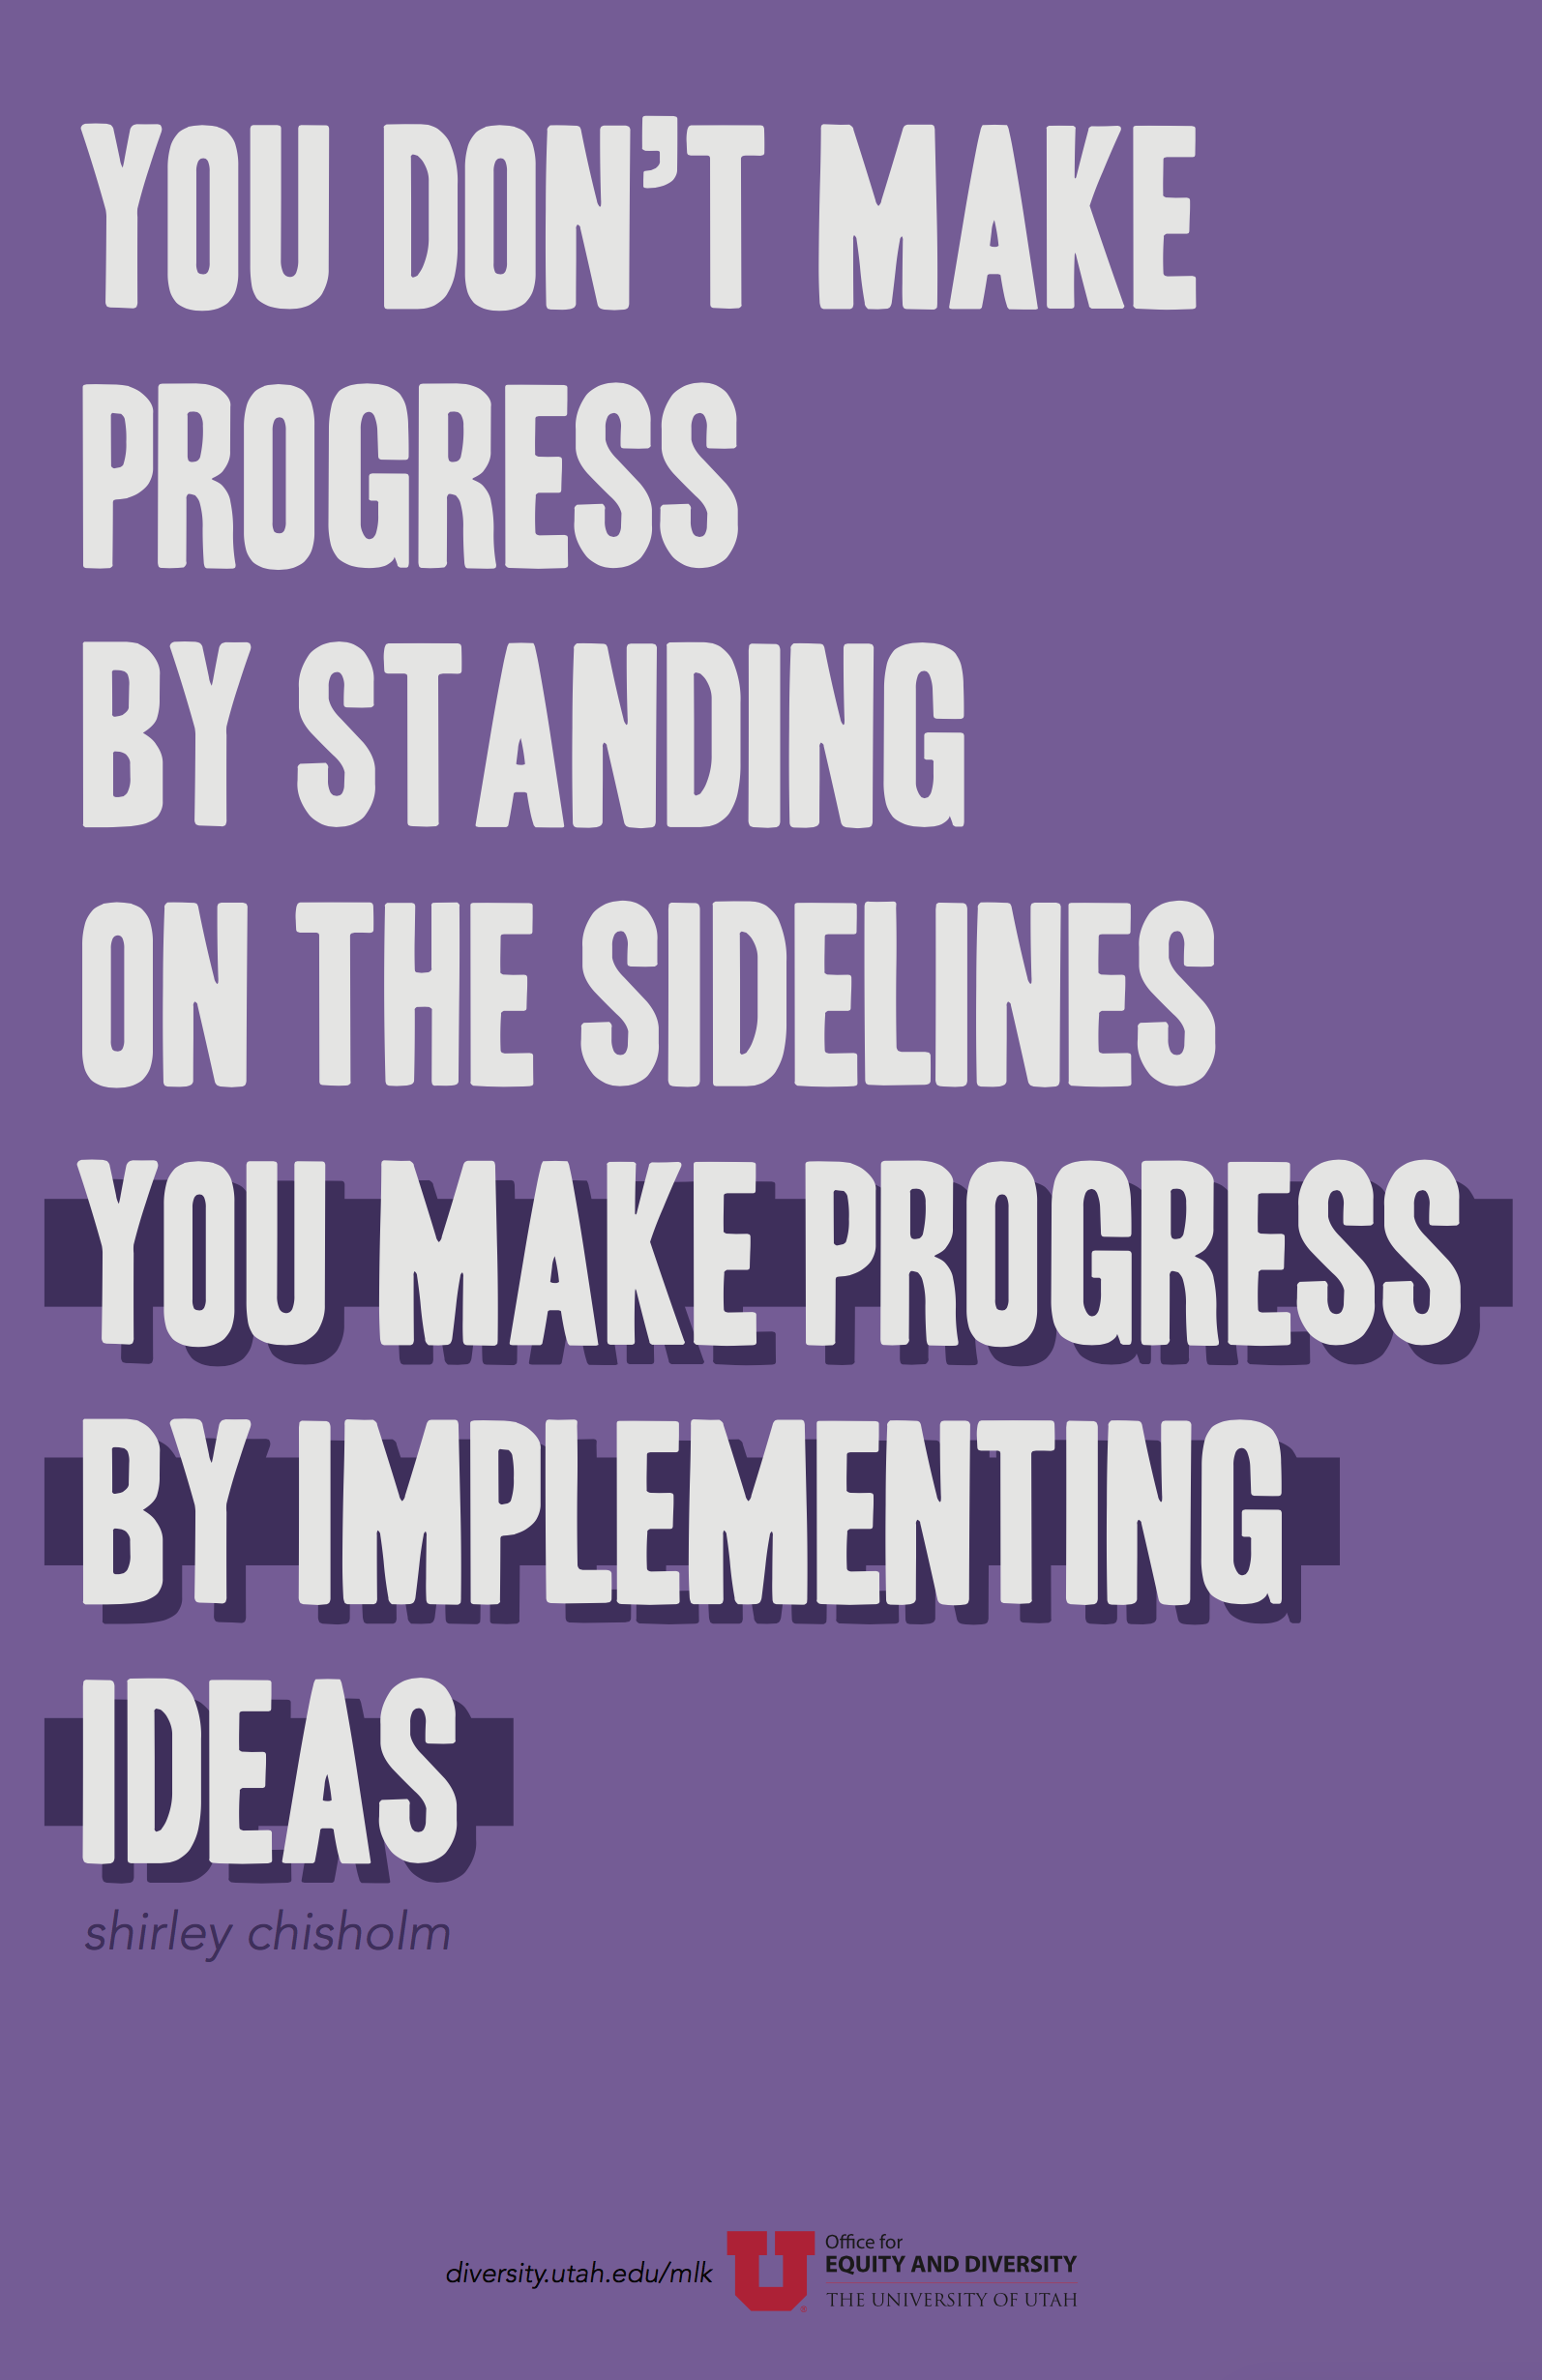 "A dull purple poster with a quote in uppercase light grey text. The quote by Shirley Chisholm reads: ""You don't make progress by standing on the sidelines...you make progress by implementing ideas."" The words ""you make progress by implementing ideas"" is emphasized in a dark purple shadow and rectangular bar behind the text."